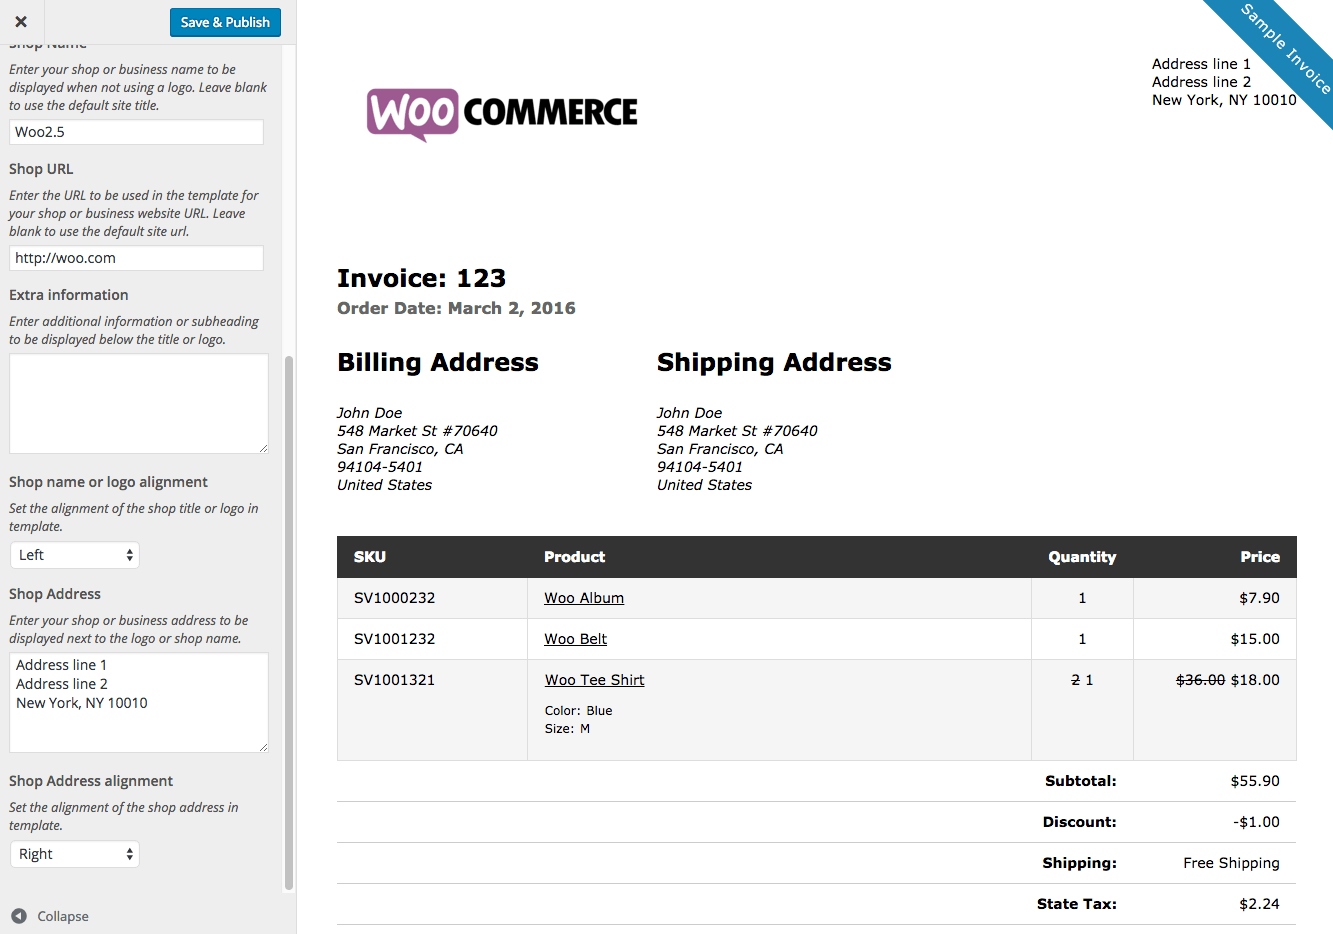 Shopdesignsus  Marvelous Print Invoices Amp Packing Lists  Woocommerce With Fascinating Woocommerce Print Invoices  Packing Lists Customizer With Archaic Examples Of Billing Invoices Also Invoice Html Template In Addition Filling Out An Invoice And What Is Sales Invoice As Well As Microsoft Invoicing Additionally Shipment Invoice From Woocommercecom With Shopdesignsus  Fascinating Print Invoices Amp Packing Lists  Woocommerce With Archaic Woocommerce Print Invoices  Packing Lists Customizer And Marvelous Examples Of Billing Invoices Also Invoice Html Template In Addition Filling Out An Invoice From Woocommercecom